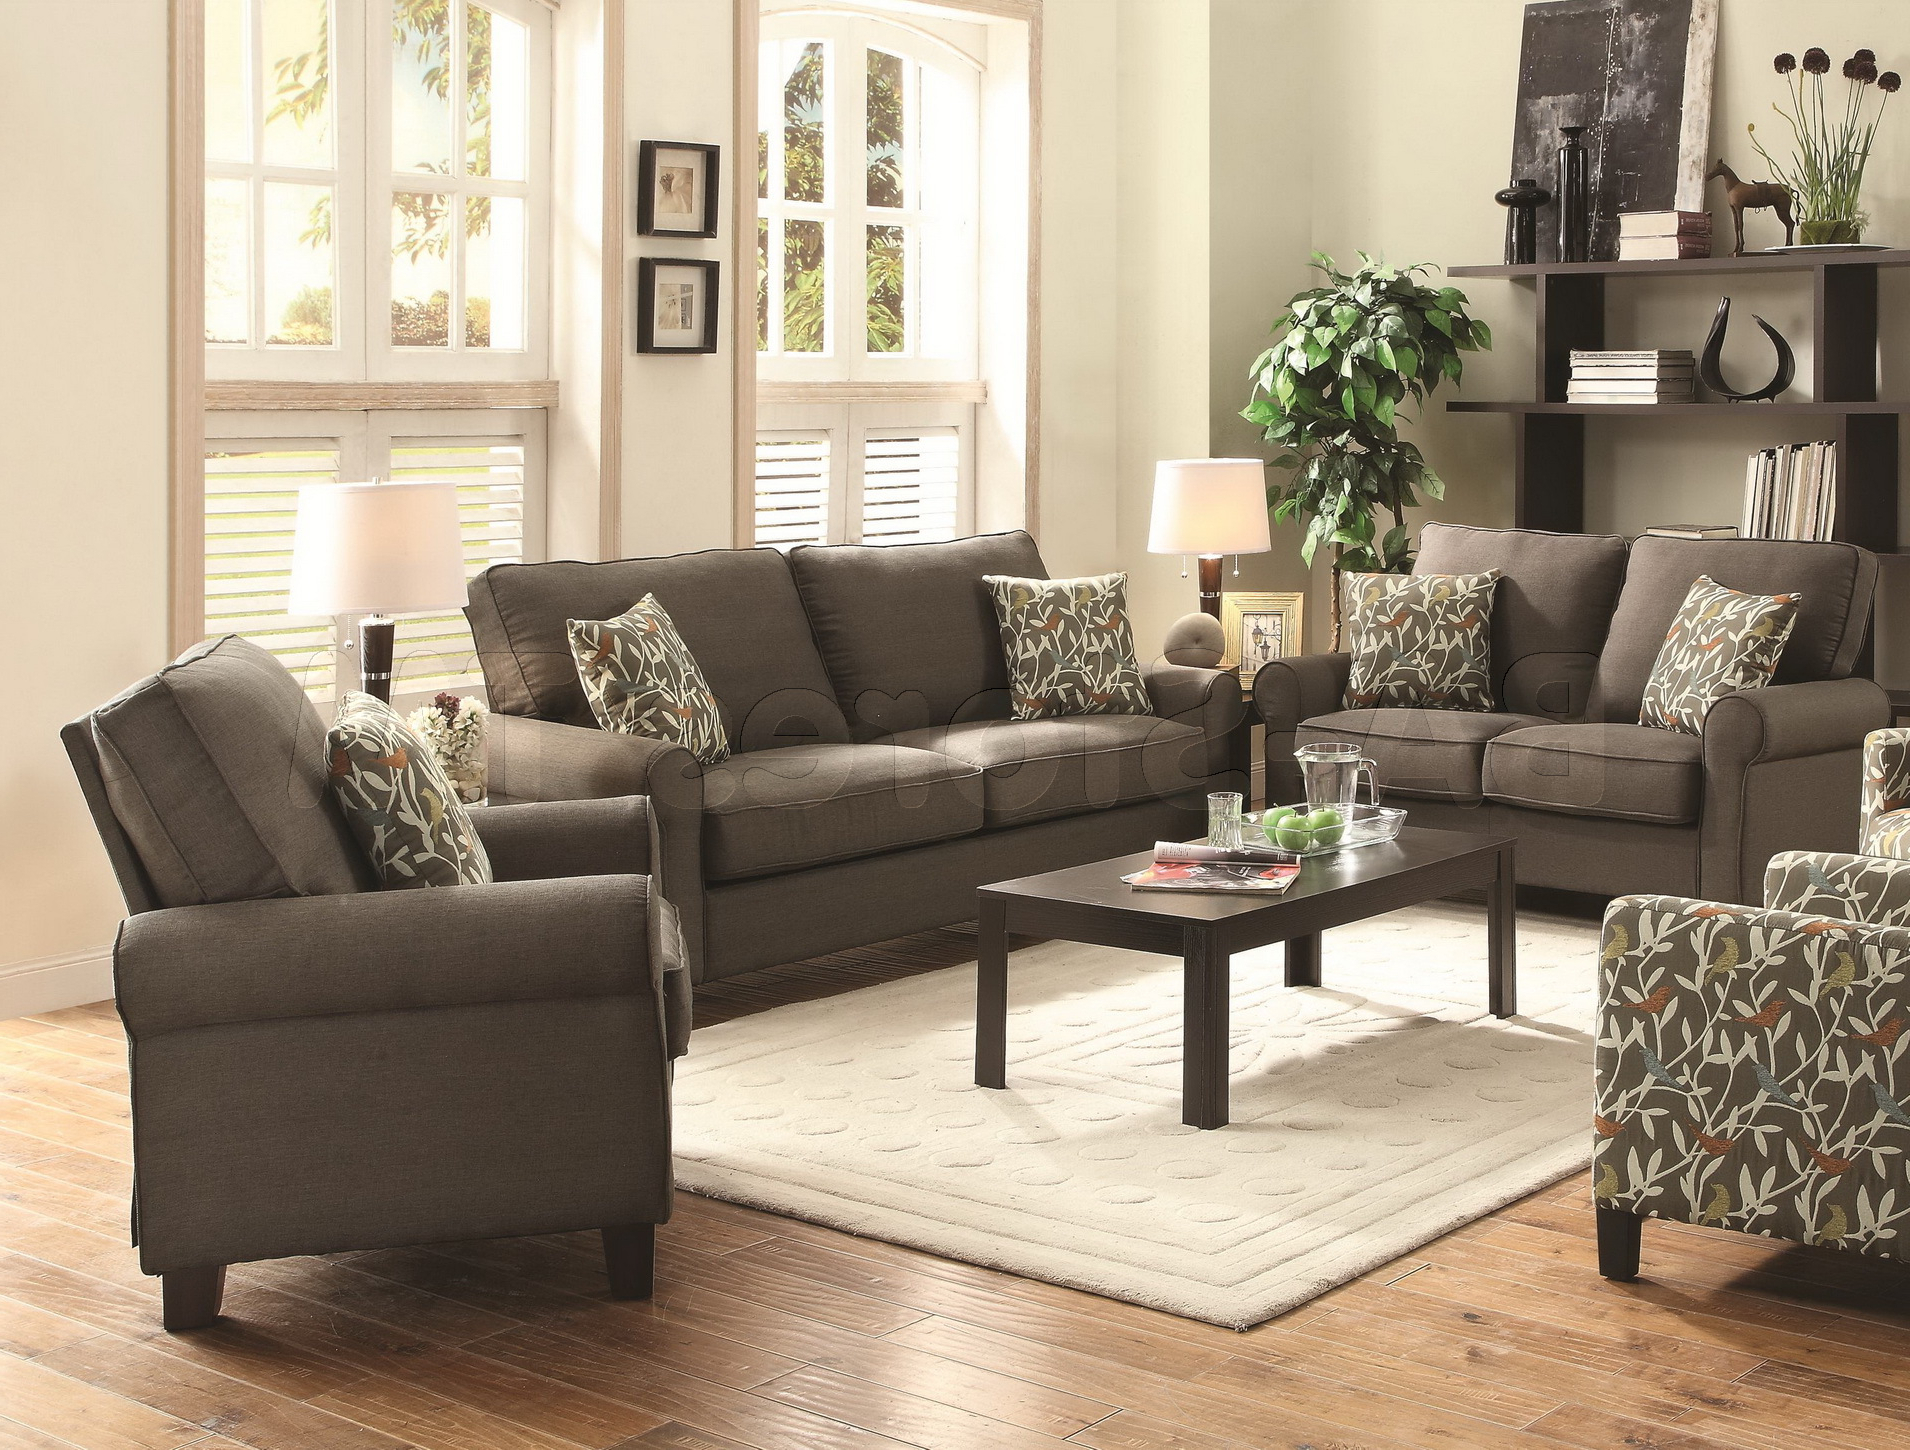 Well Known Sofa Loveseat And Chair Set In How To Find The Best Sofa Loveseat Set – Bellissimainteriors (View 19 of 20)